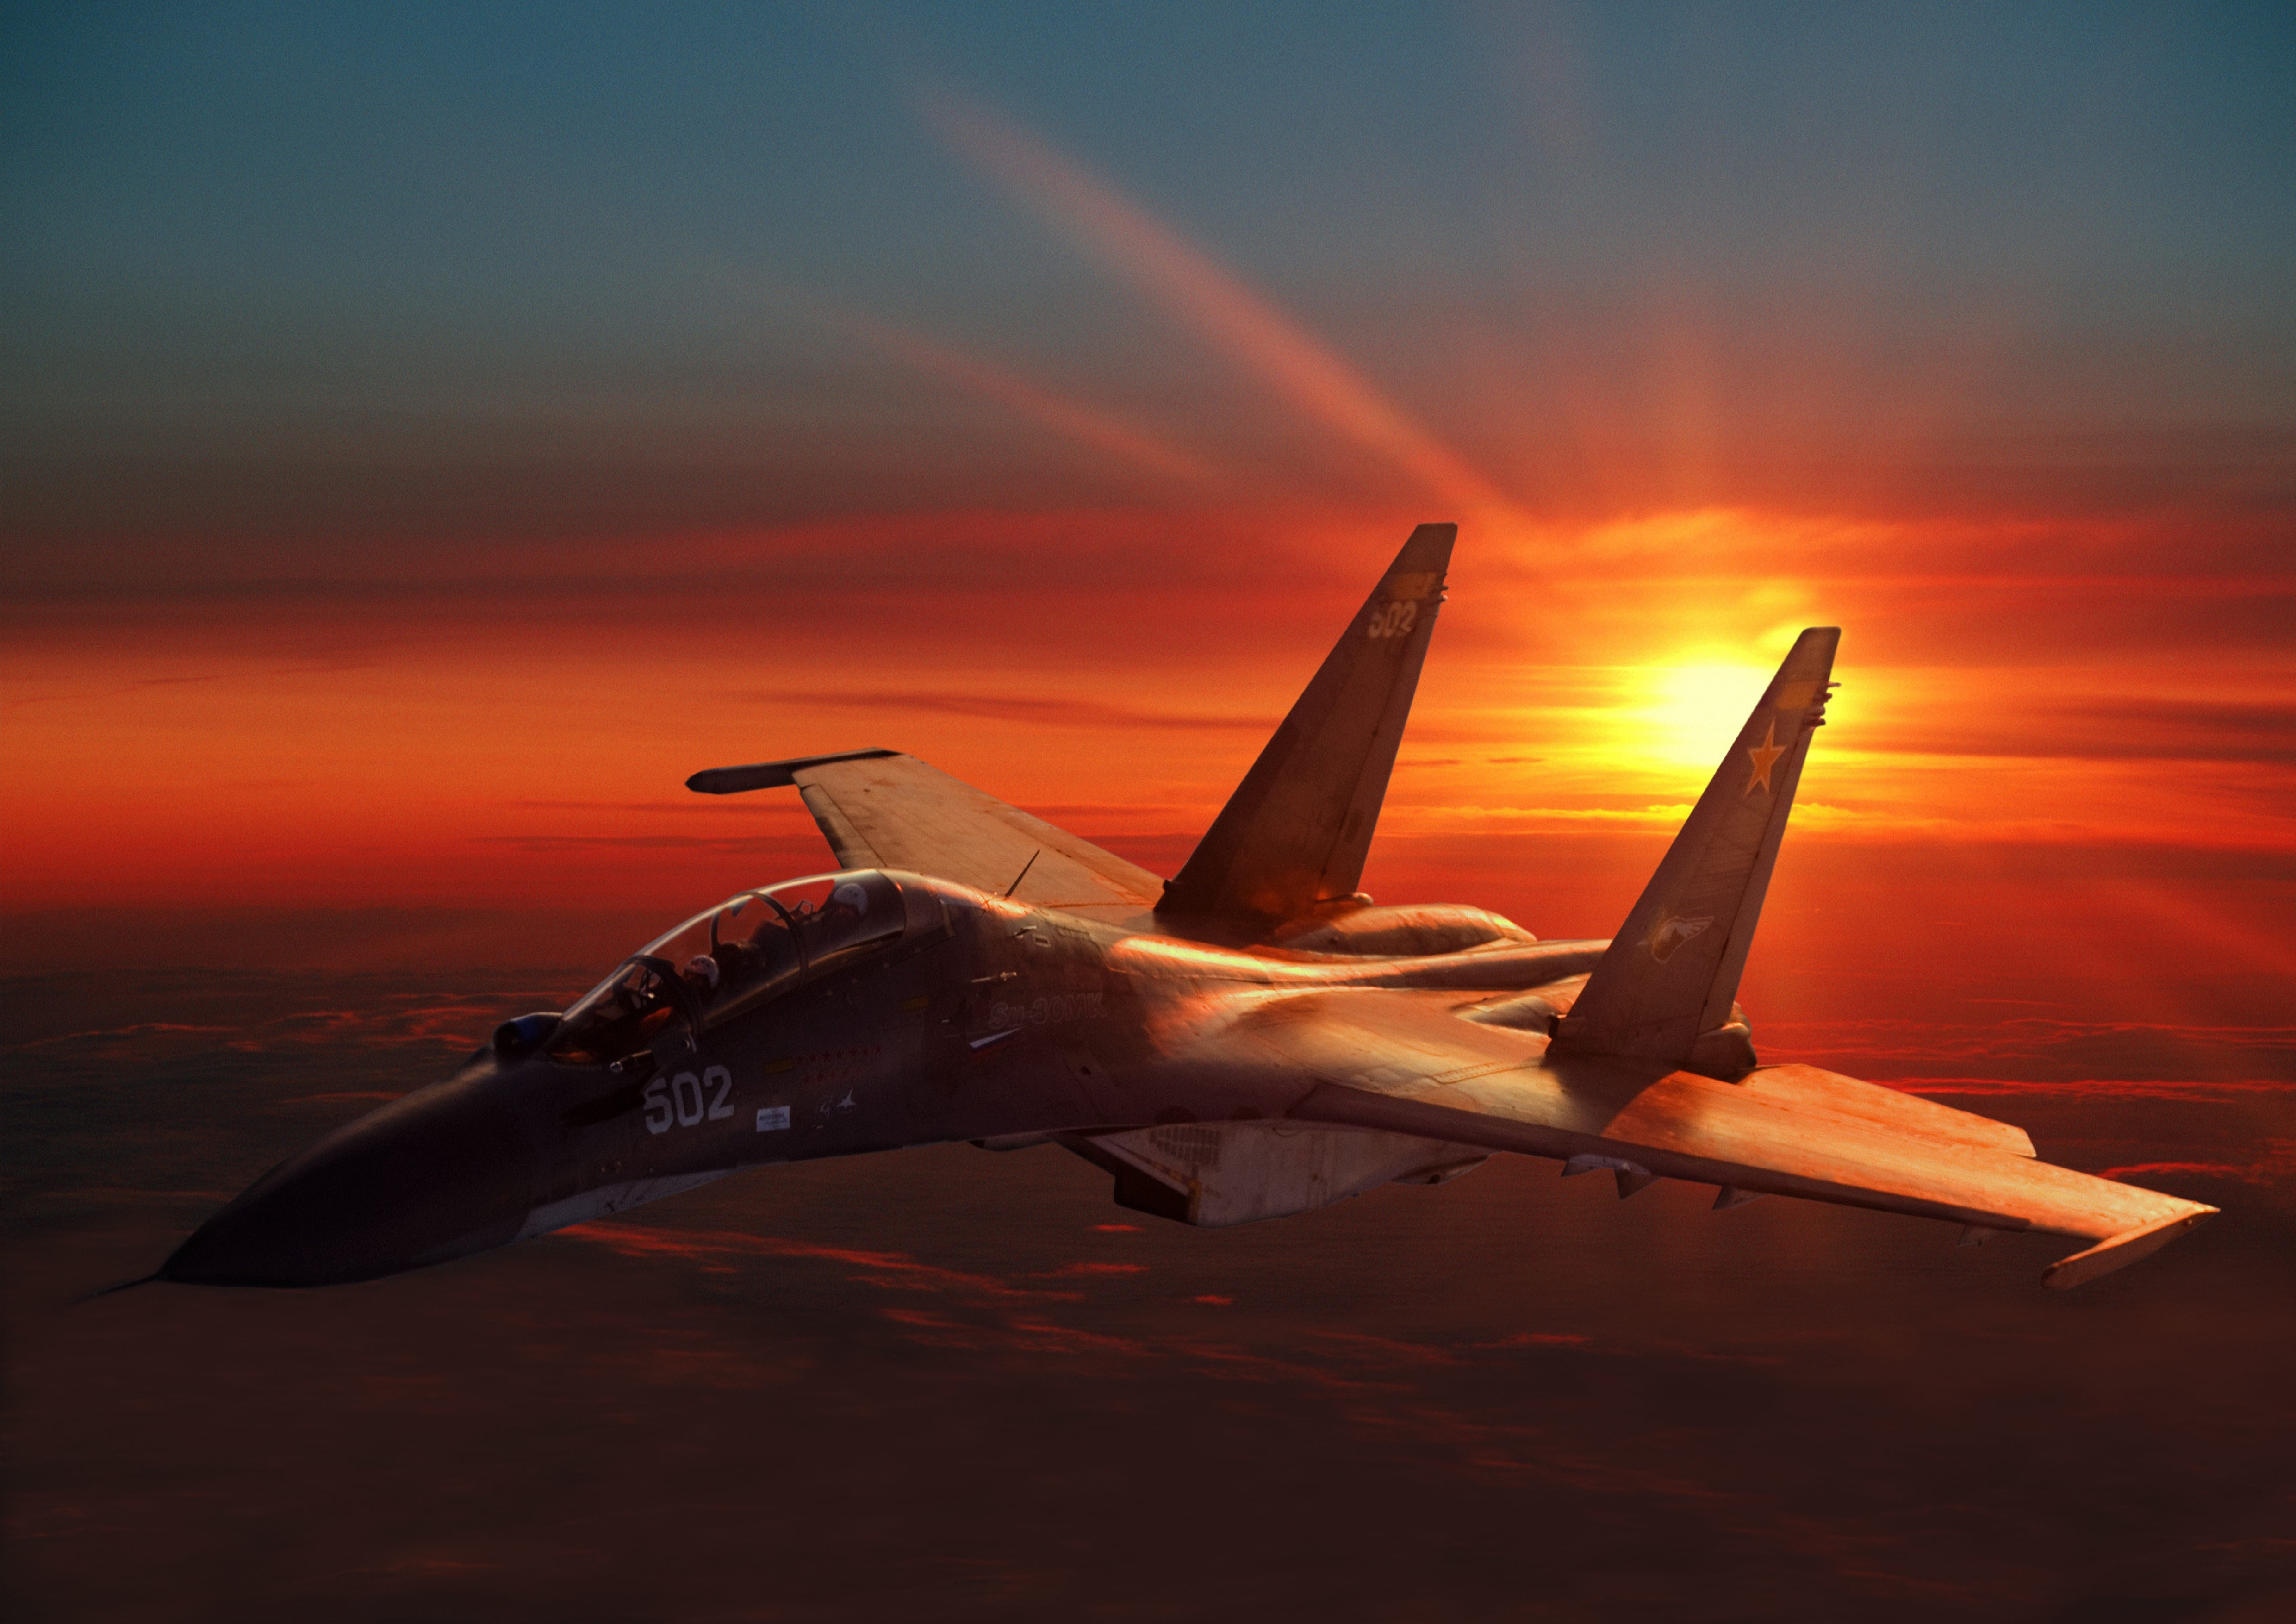 Wallpaper Sukhoi Su 30 Fighter Aircraft Sunset Russian Army